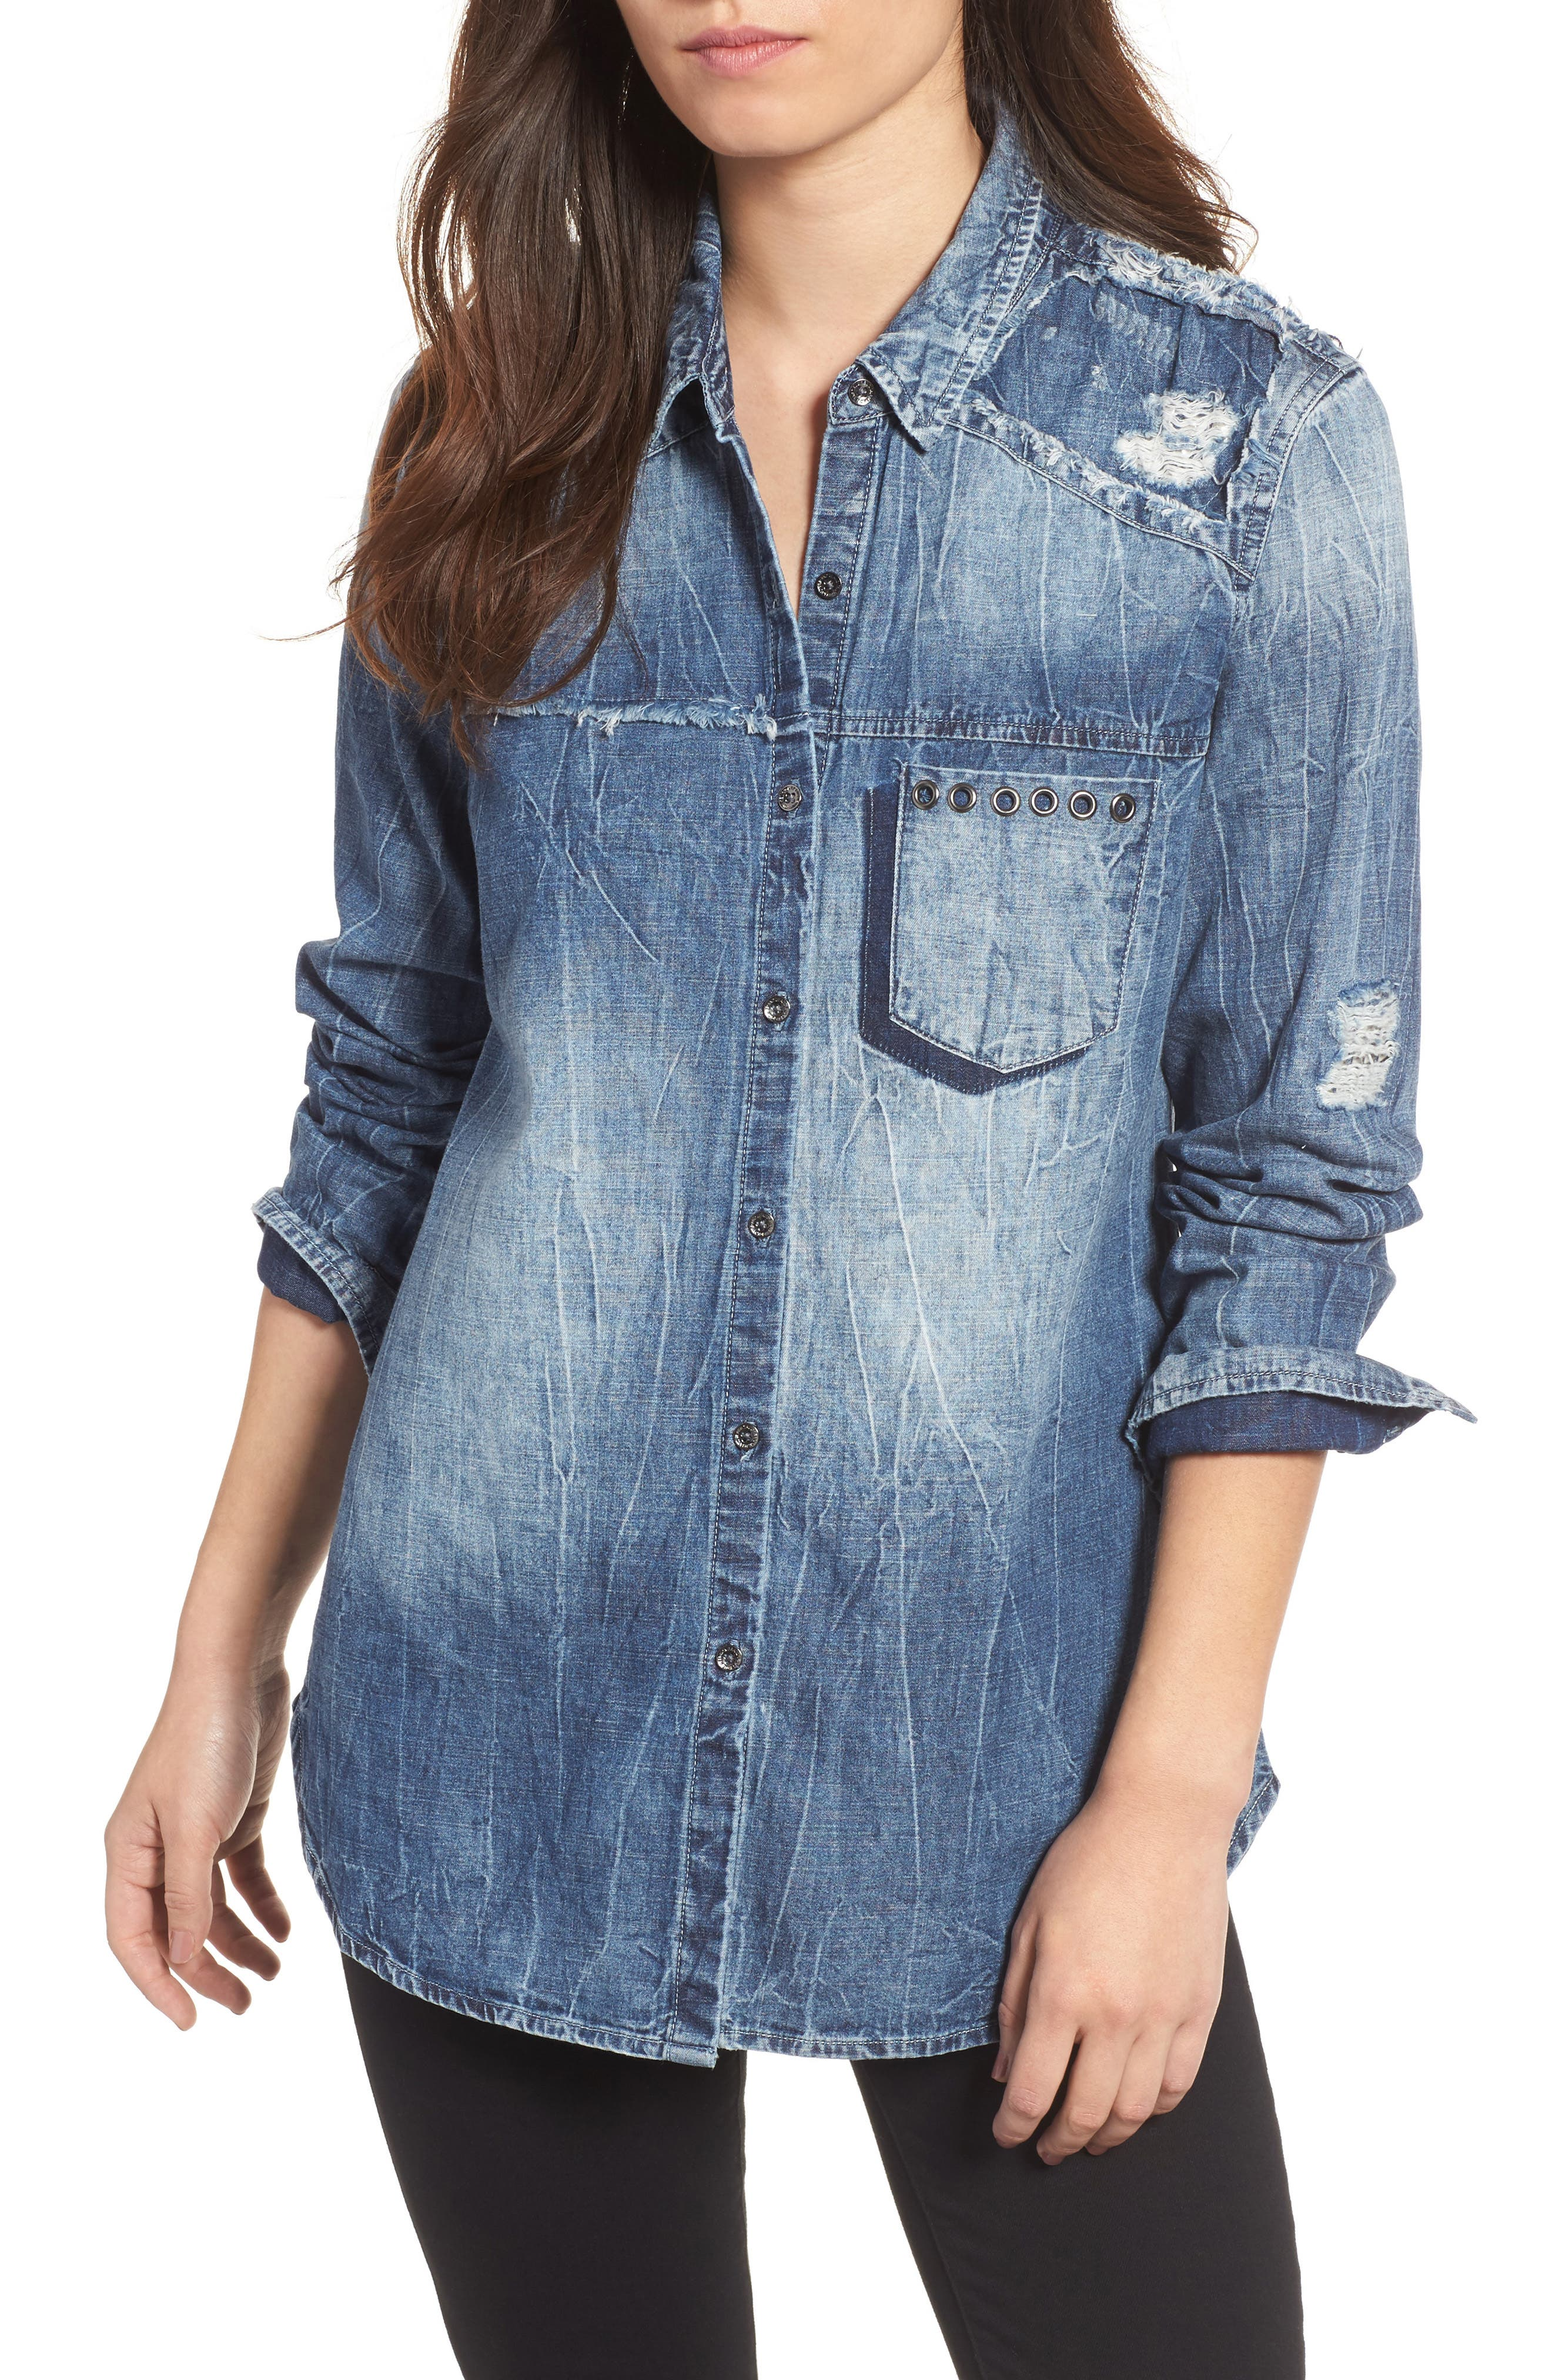 True Religion Brand Jeans Georgia Distressed Denim Shirt